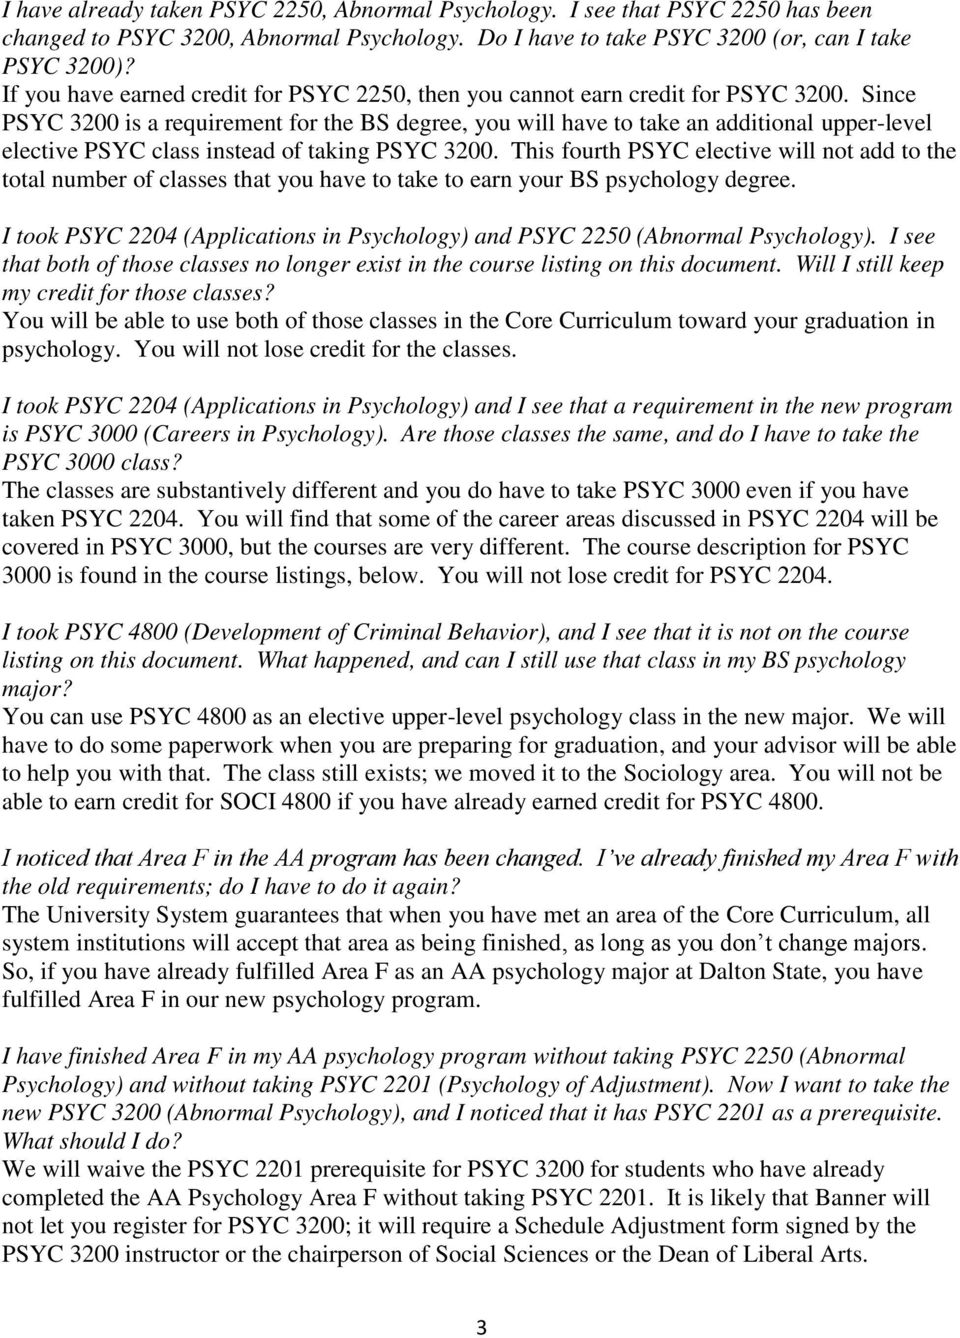 Since PSYC 200 is a requirement for the BS degree, you will have to take an additional upper-level elective PSYC class instead of taking PSYC 200.